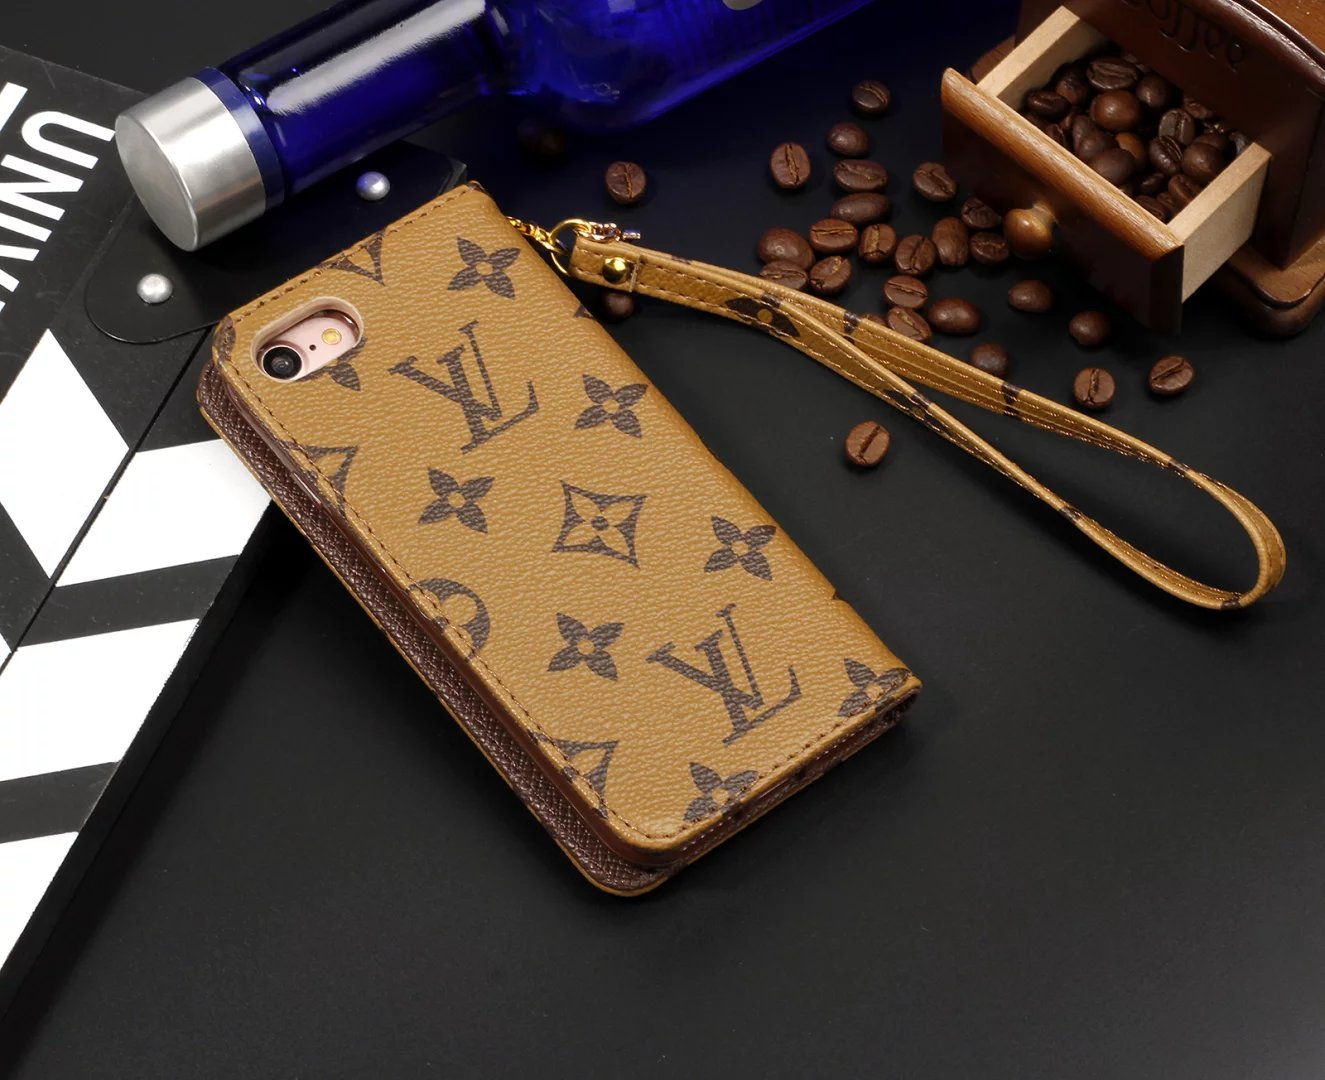 iphone case selbst gestalten günstig iphone hüllen bestellen Louis Vuitton iphone 8 Plus hüllen iphone 8 Plus filzhülle iphone 8 Plus a8 Plus durchsichtig lustige iphone 8 Plus hüllen iphone 8 Plus schutztasche apple handytasche eigenes handy cover erstellen